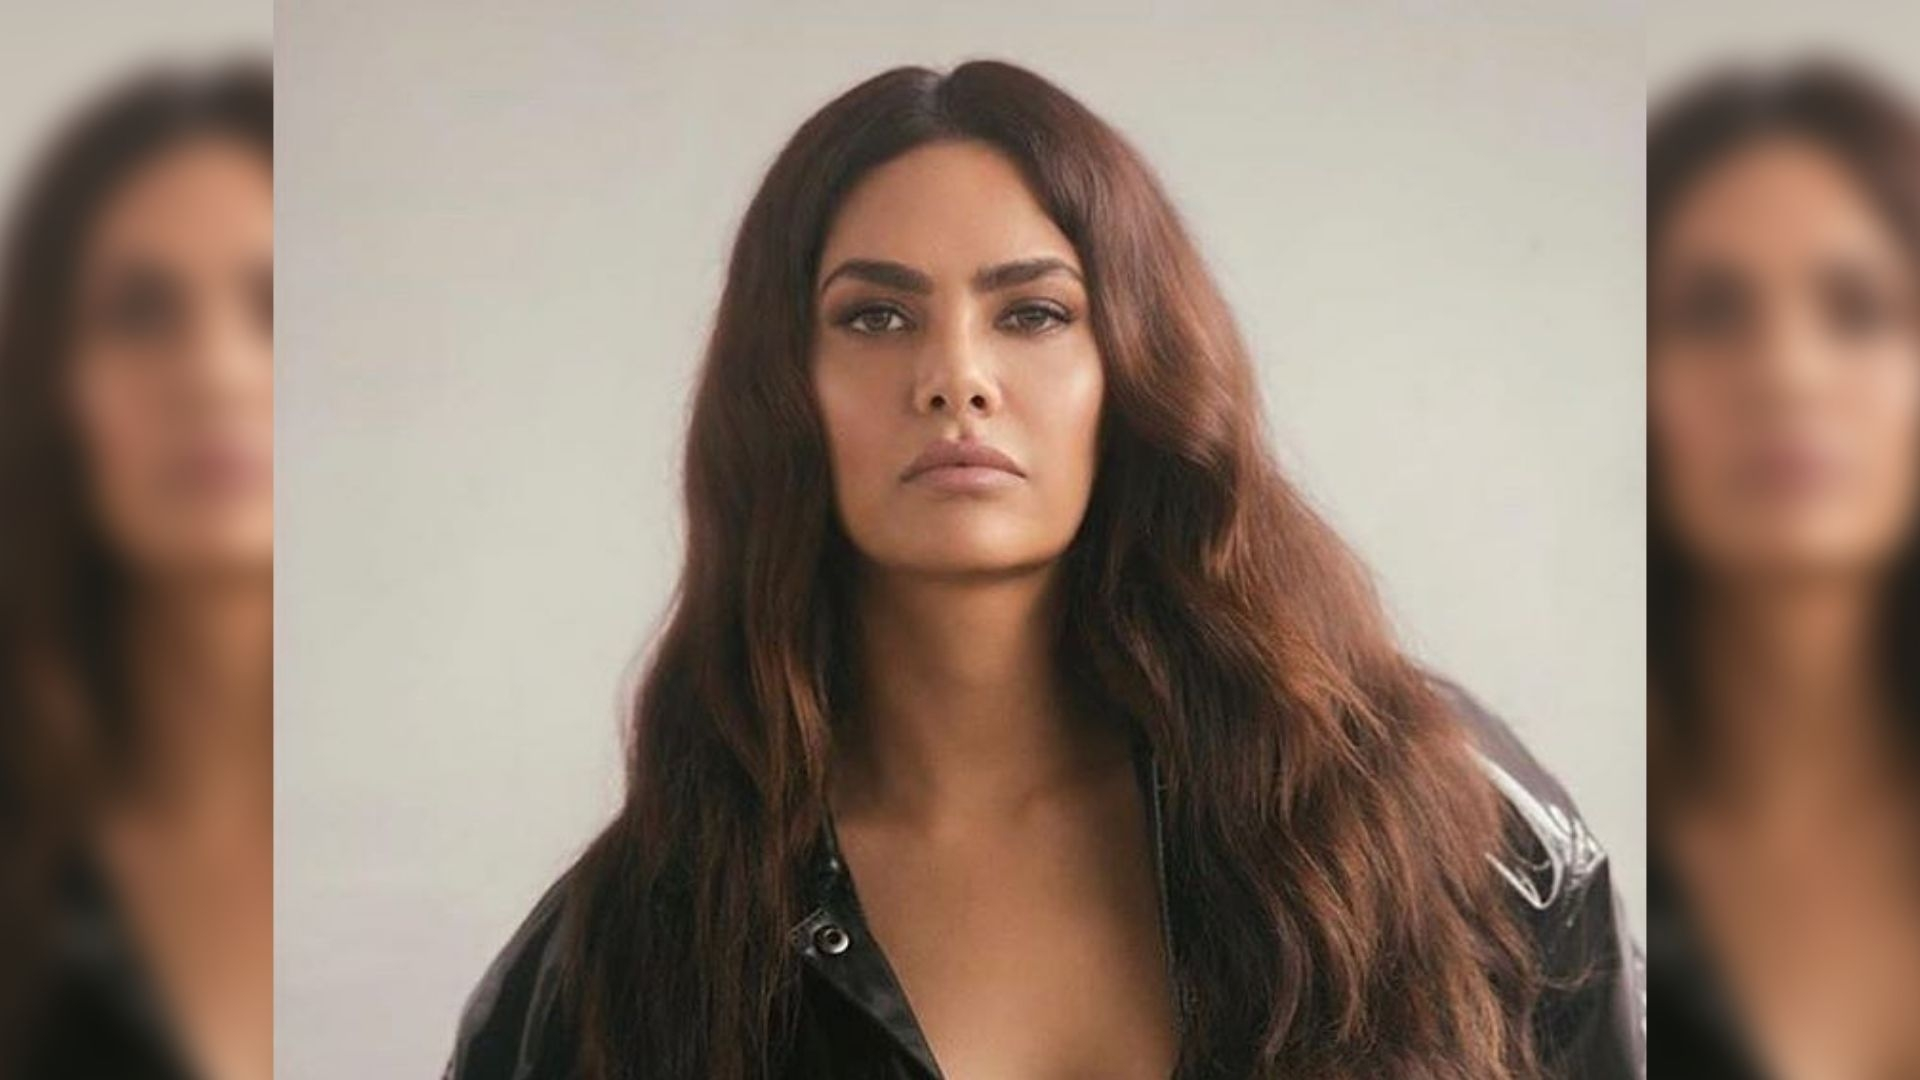 Esha Gupta Accuses Restaurateur of Making Her Feel 'Raped'